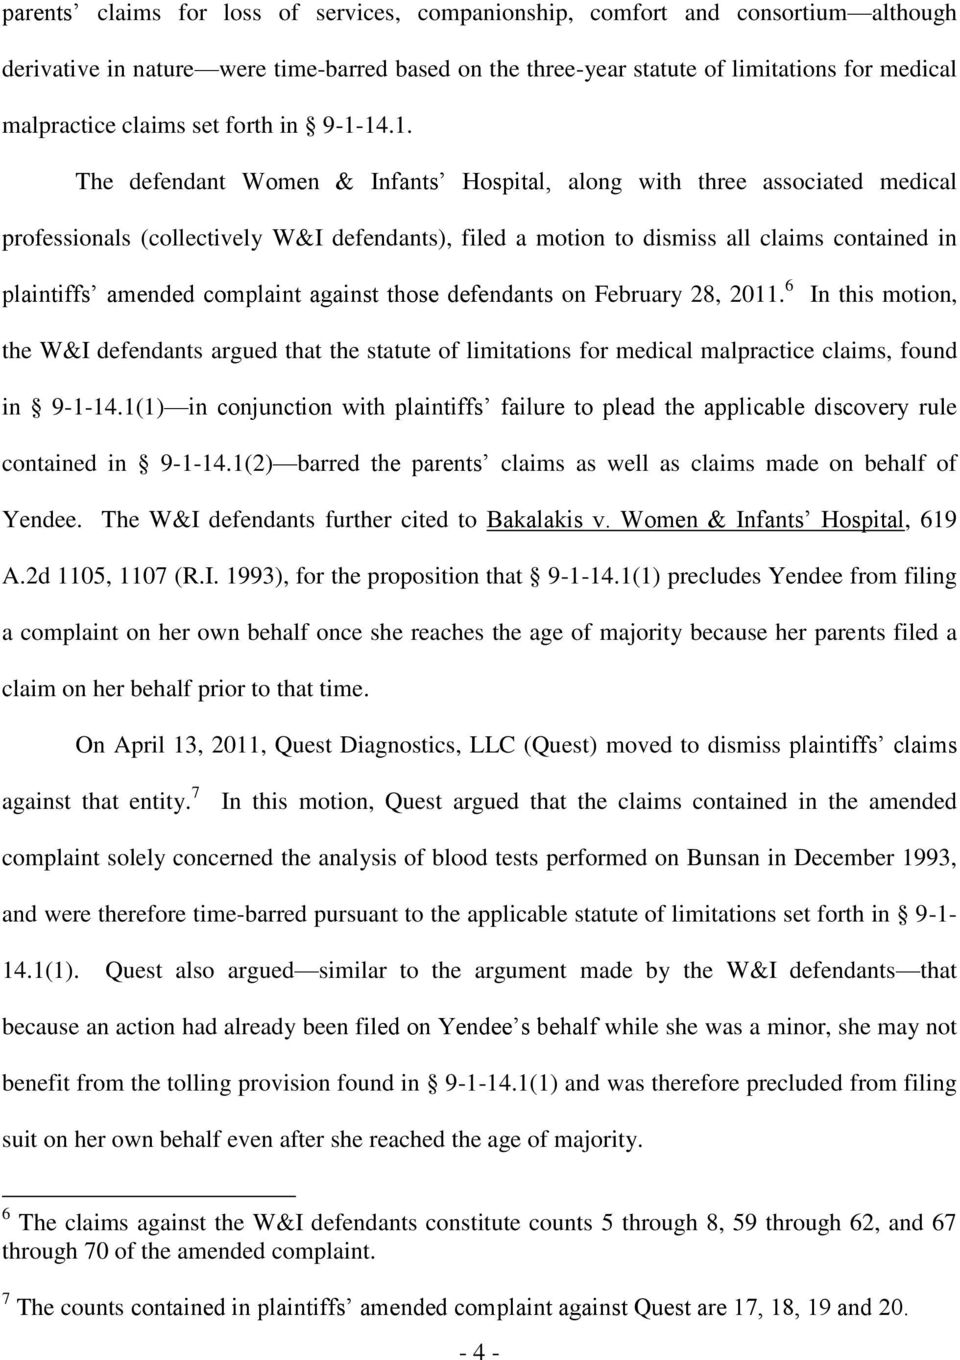 14.1. The defendant Women & Infants Hospital, along with three associated medical professionals (collectively W&I defendants), filed a motion to dismiss all claims contained in plaintiffs amended